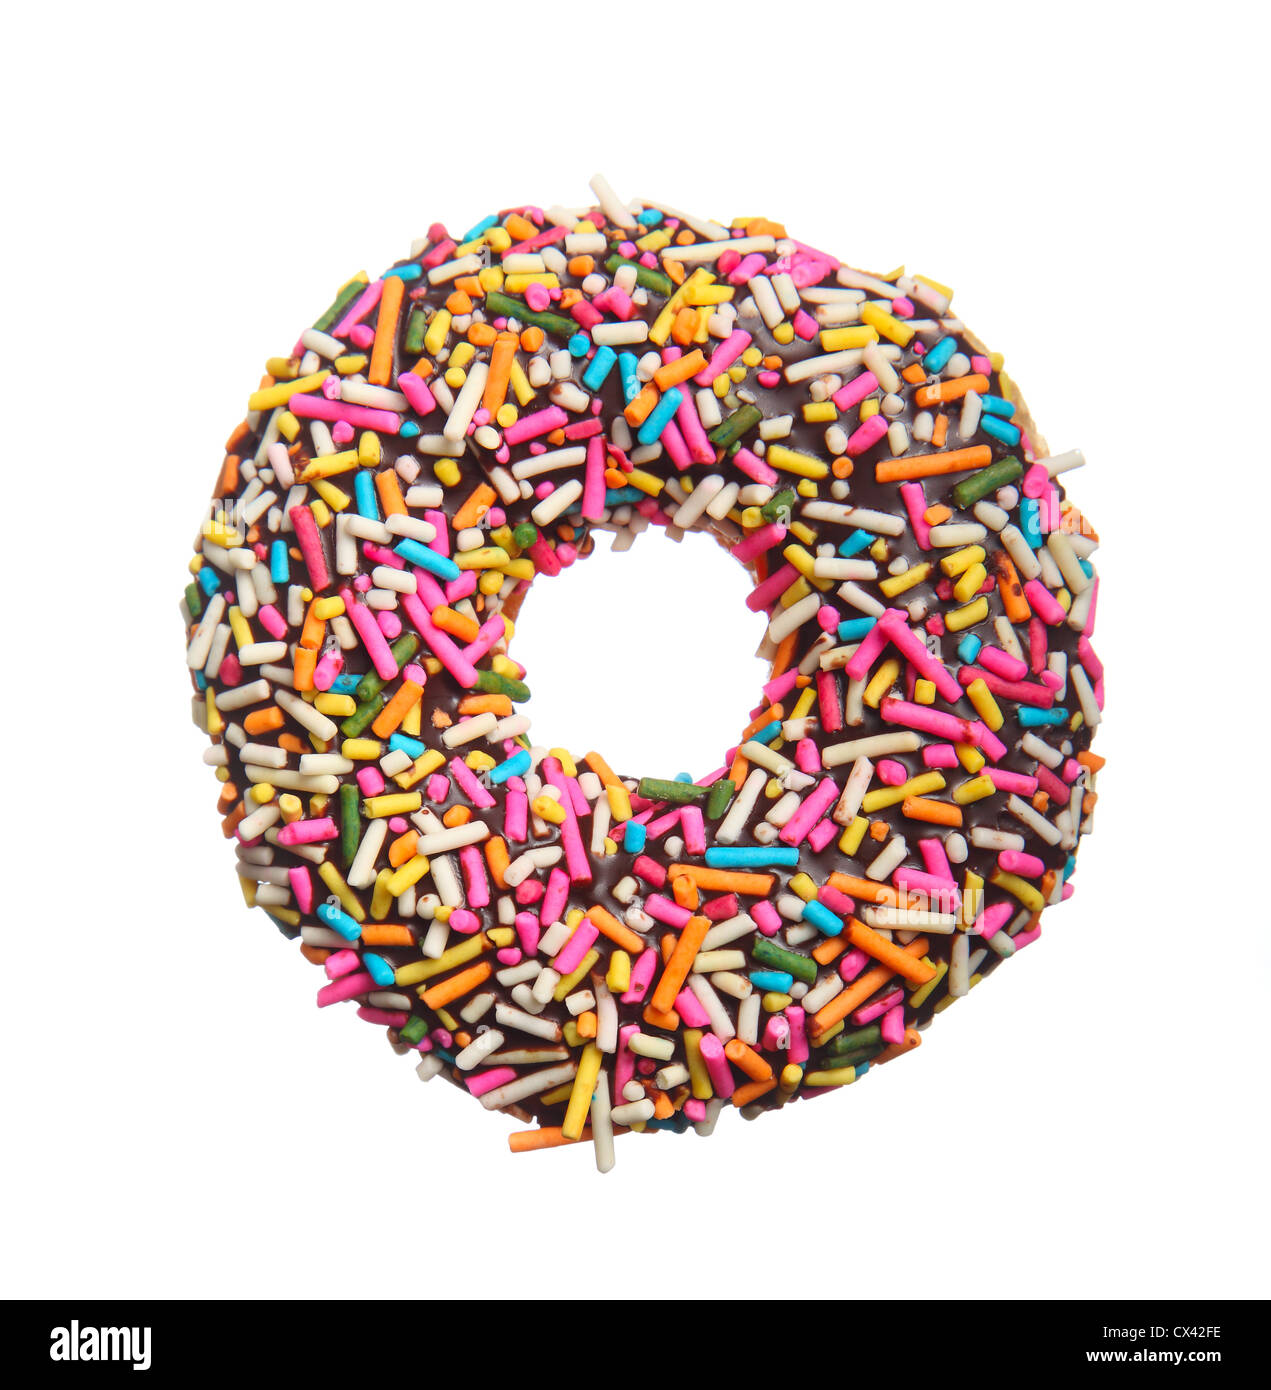 Colorful donut isolated on white background - Stock Image